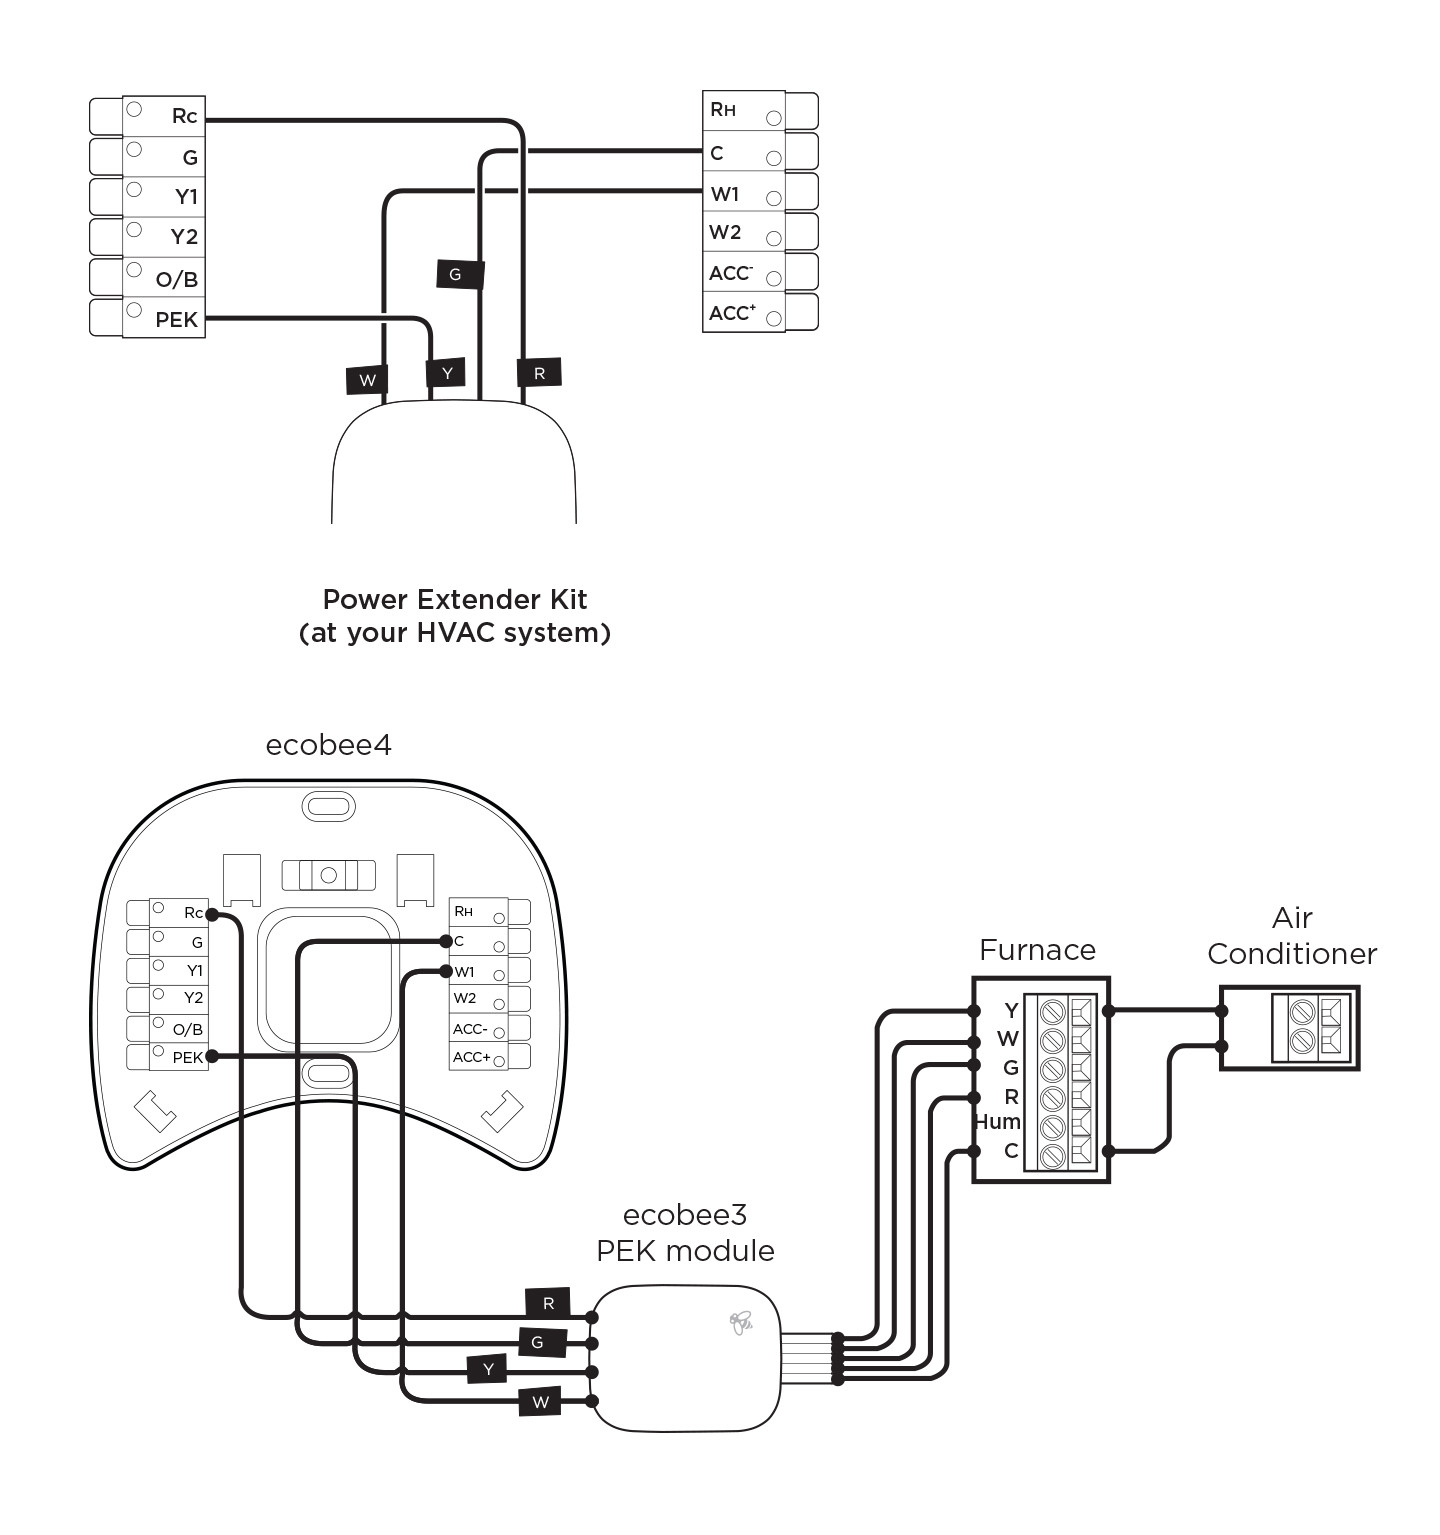 hight resolution of ecobee3 wiring diagram collection audi a4 b6 ecu wiring diagram fresh ecobee3 lite with no download wiring diagram